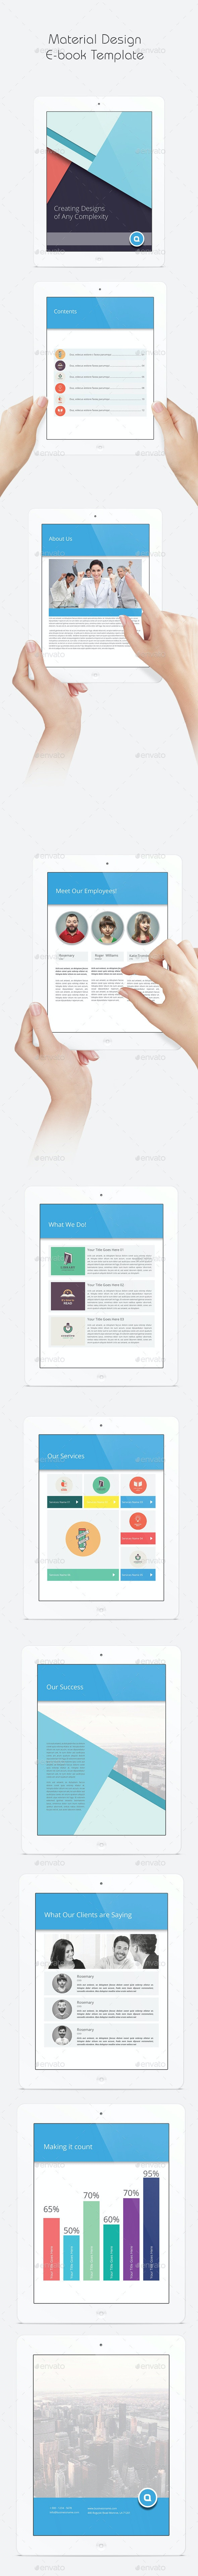 Material Design eBook Template - ePublishing